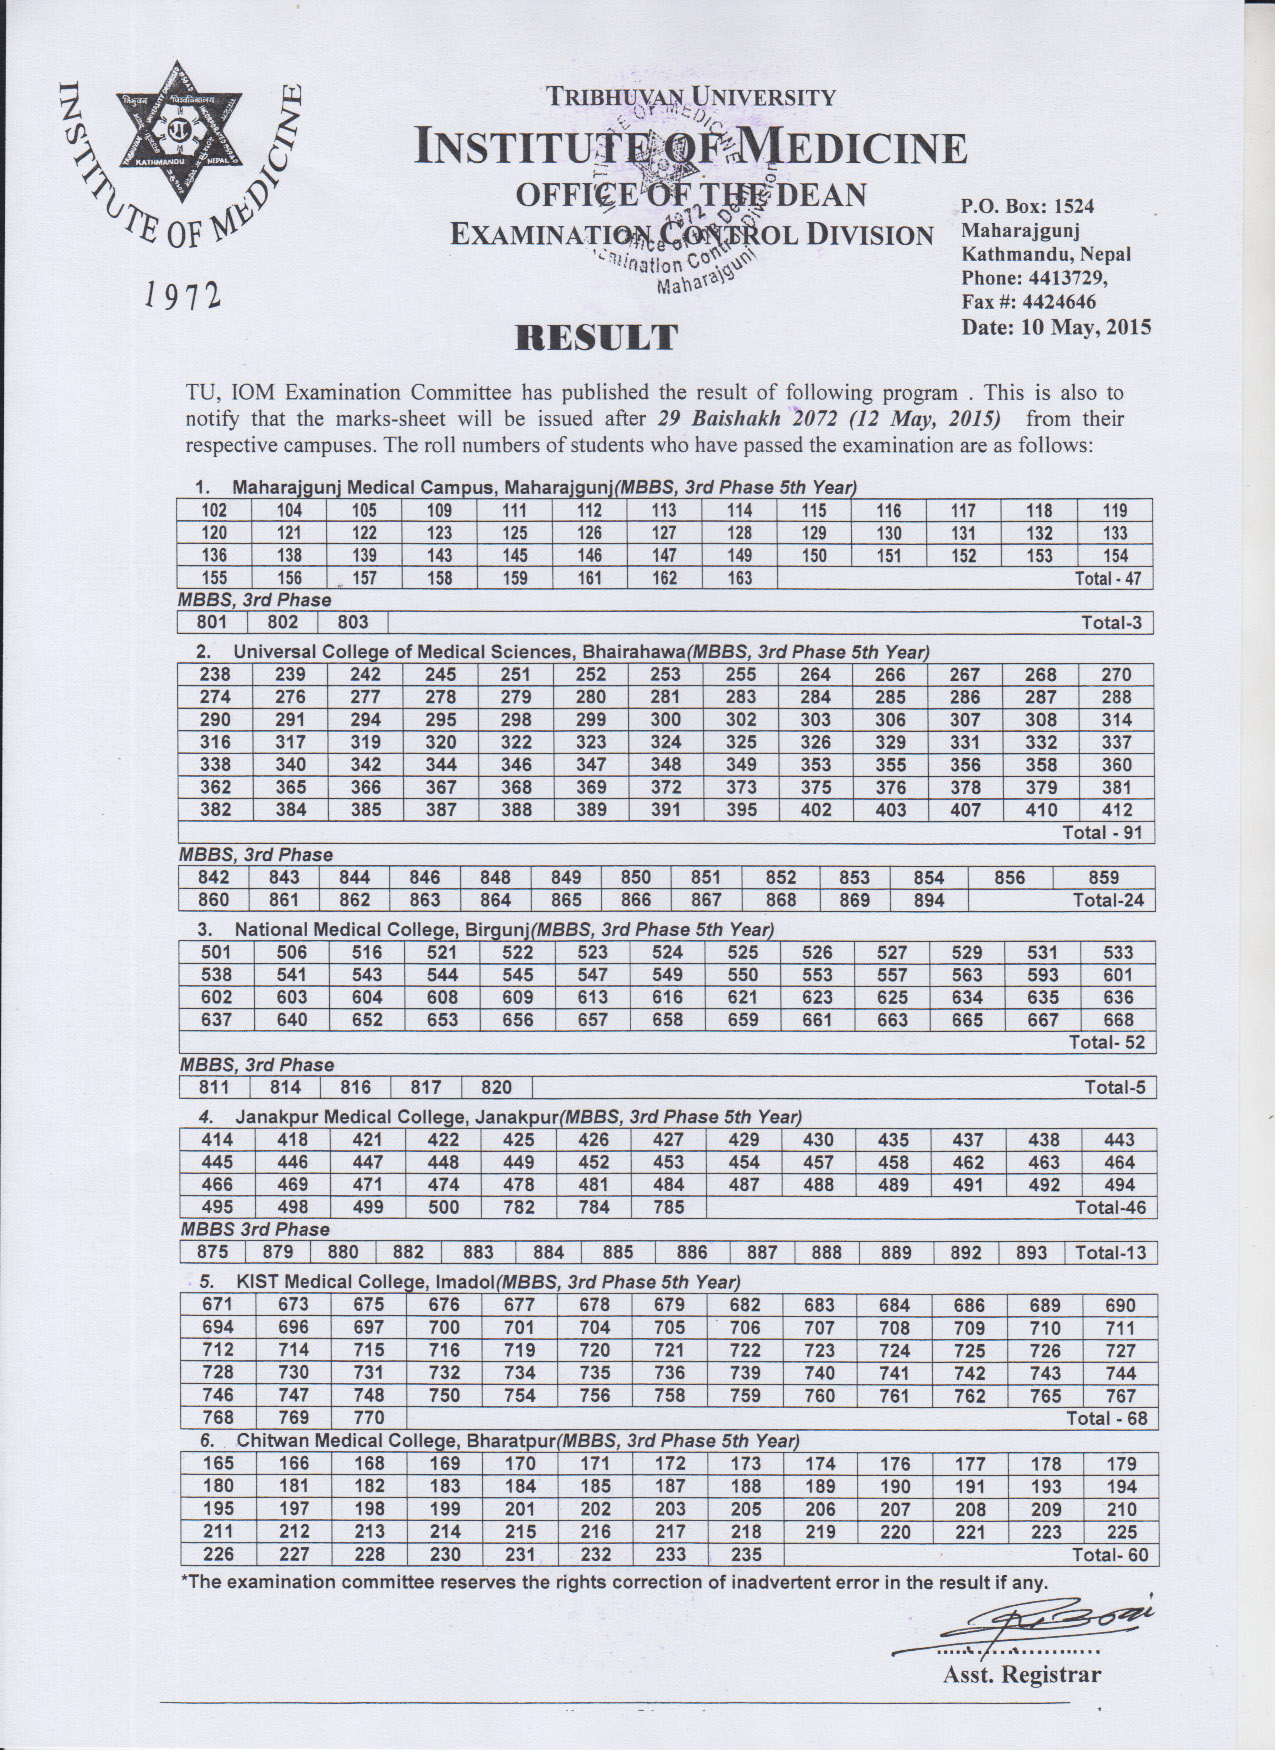 Result of MBBS 3rd Phase 5th year & MBBS 3rd Phase Final Year.jpg